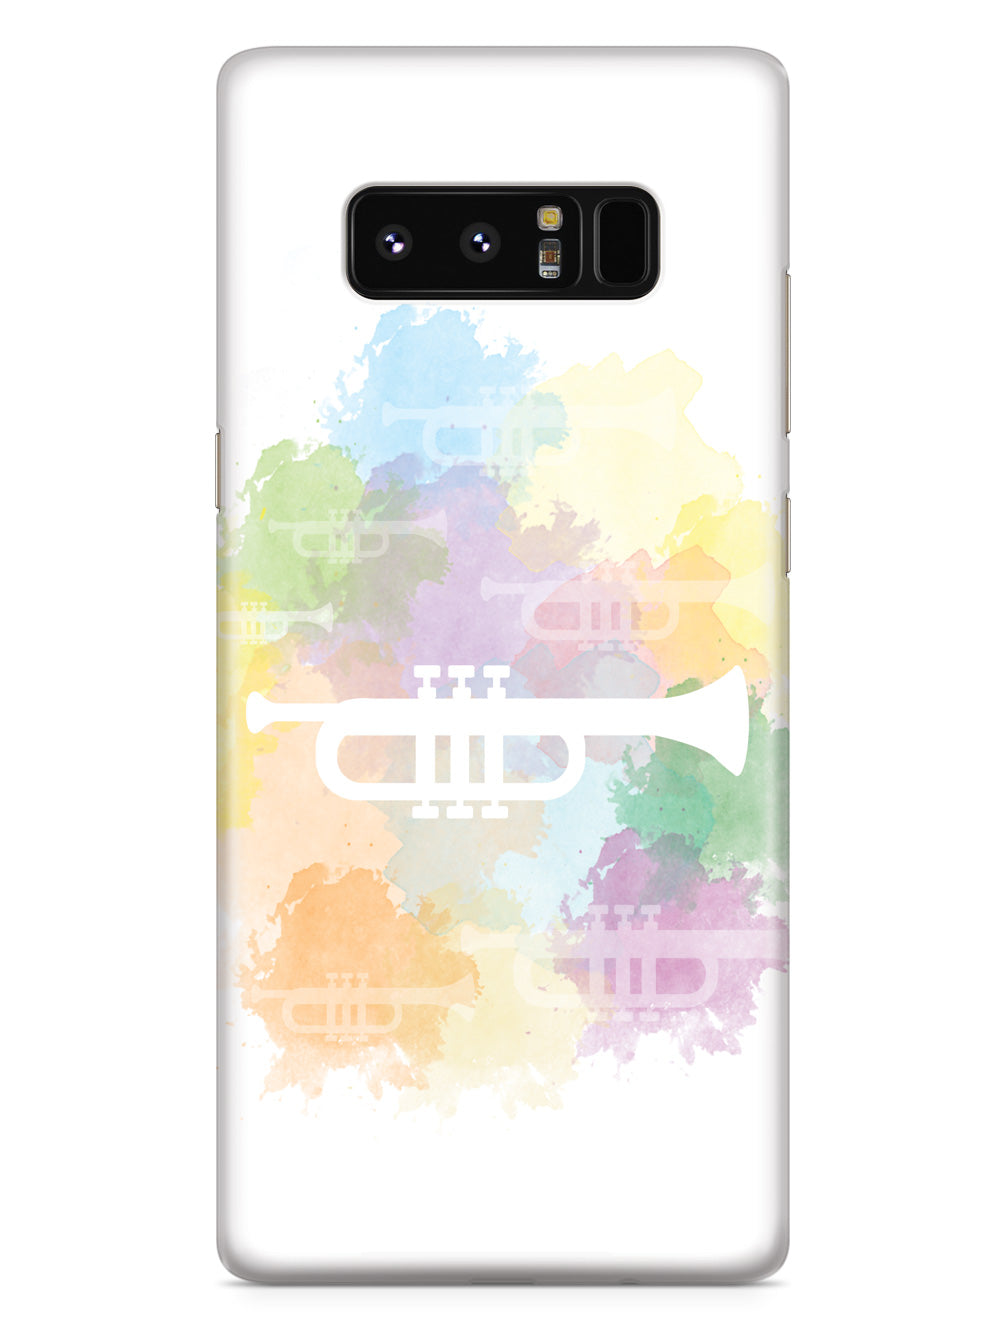 Trumpet Silhouette - Watercolor Case